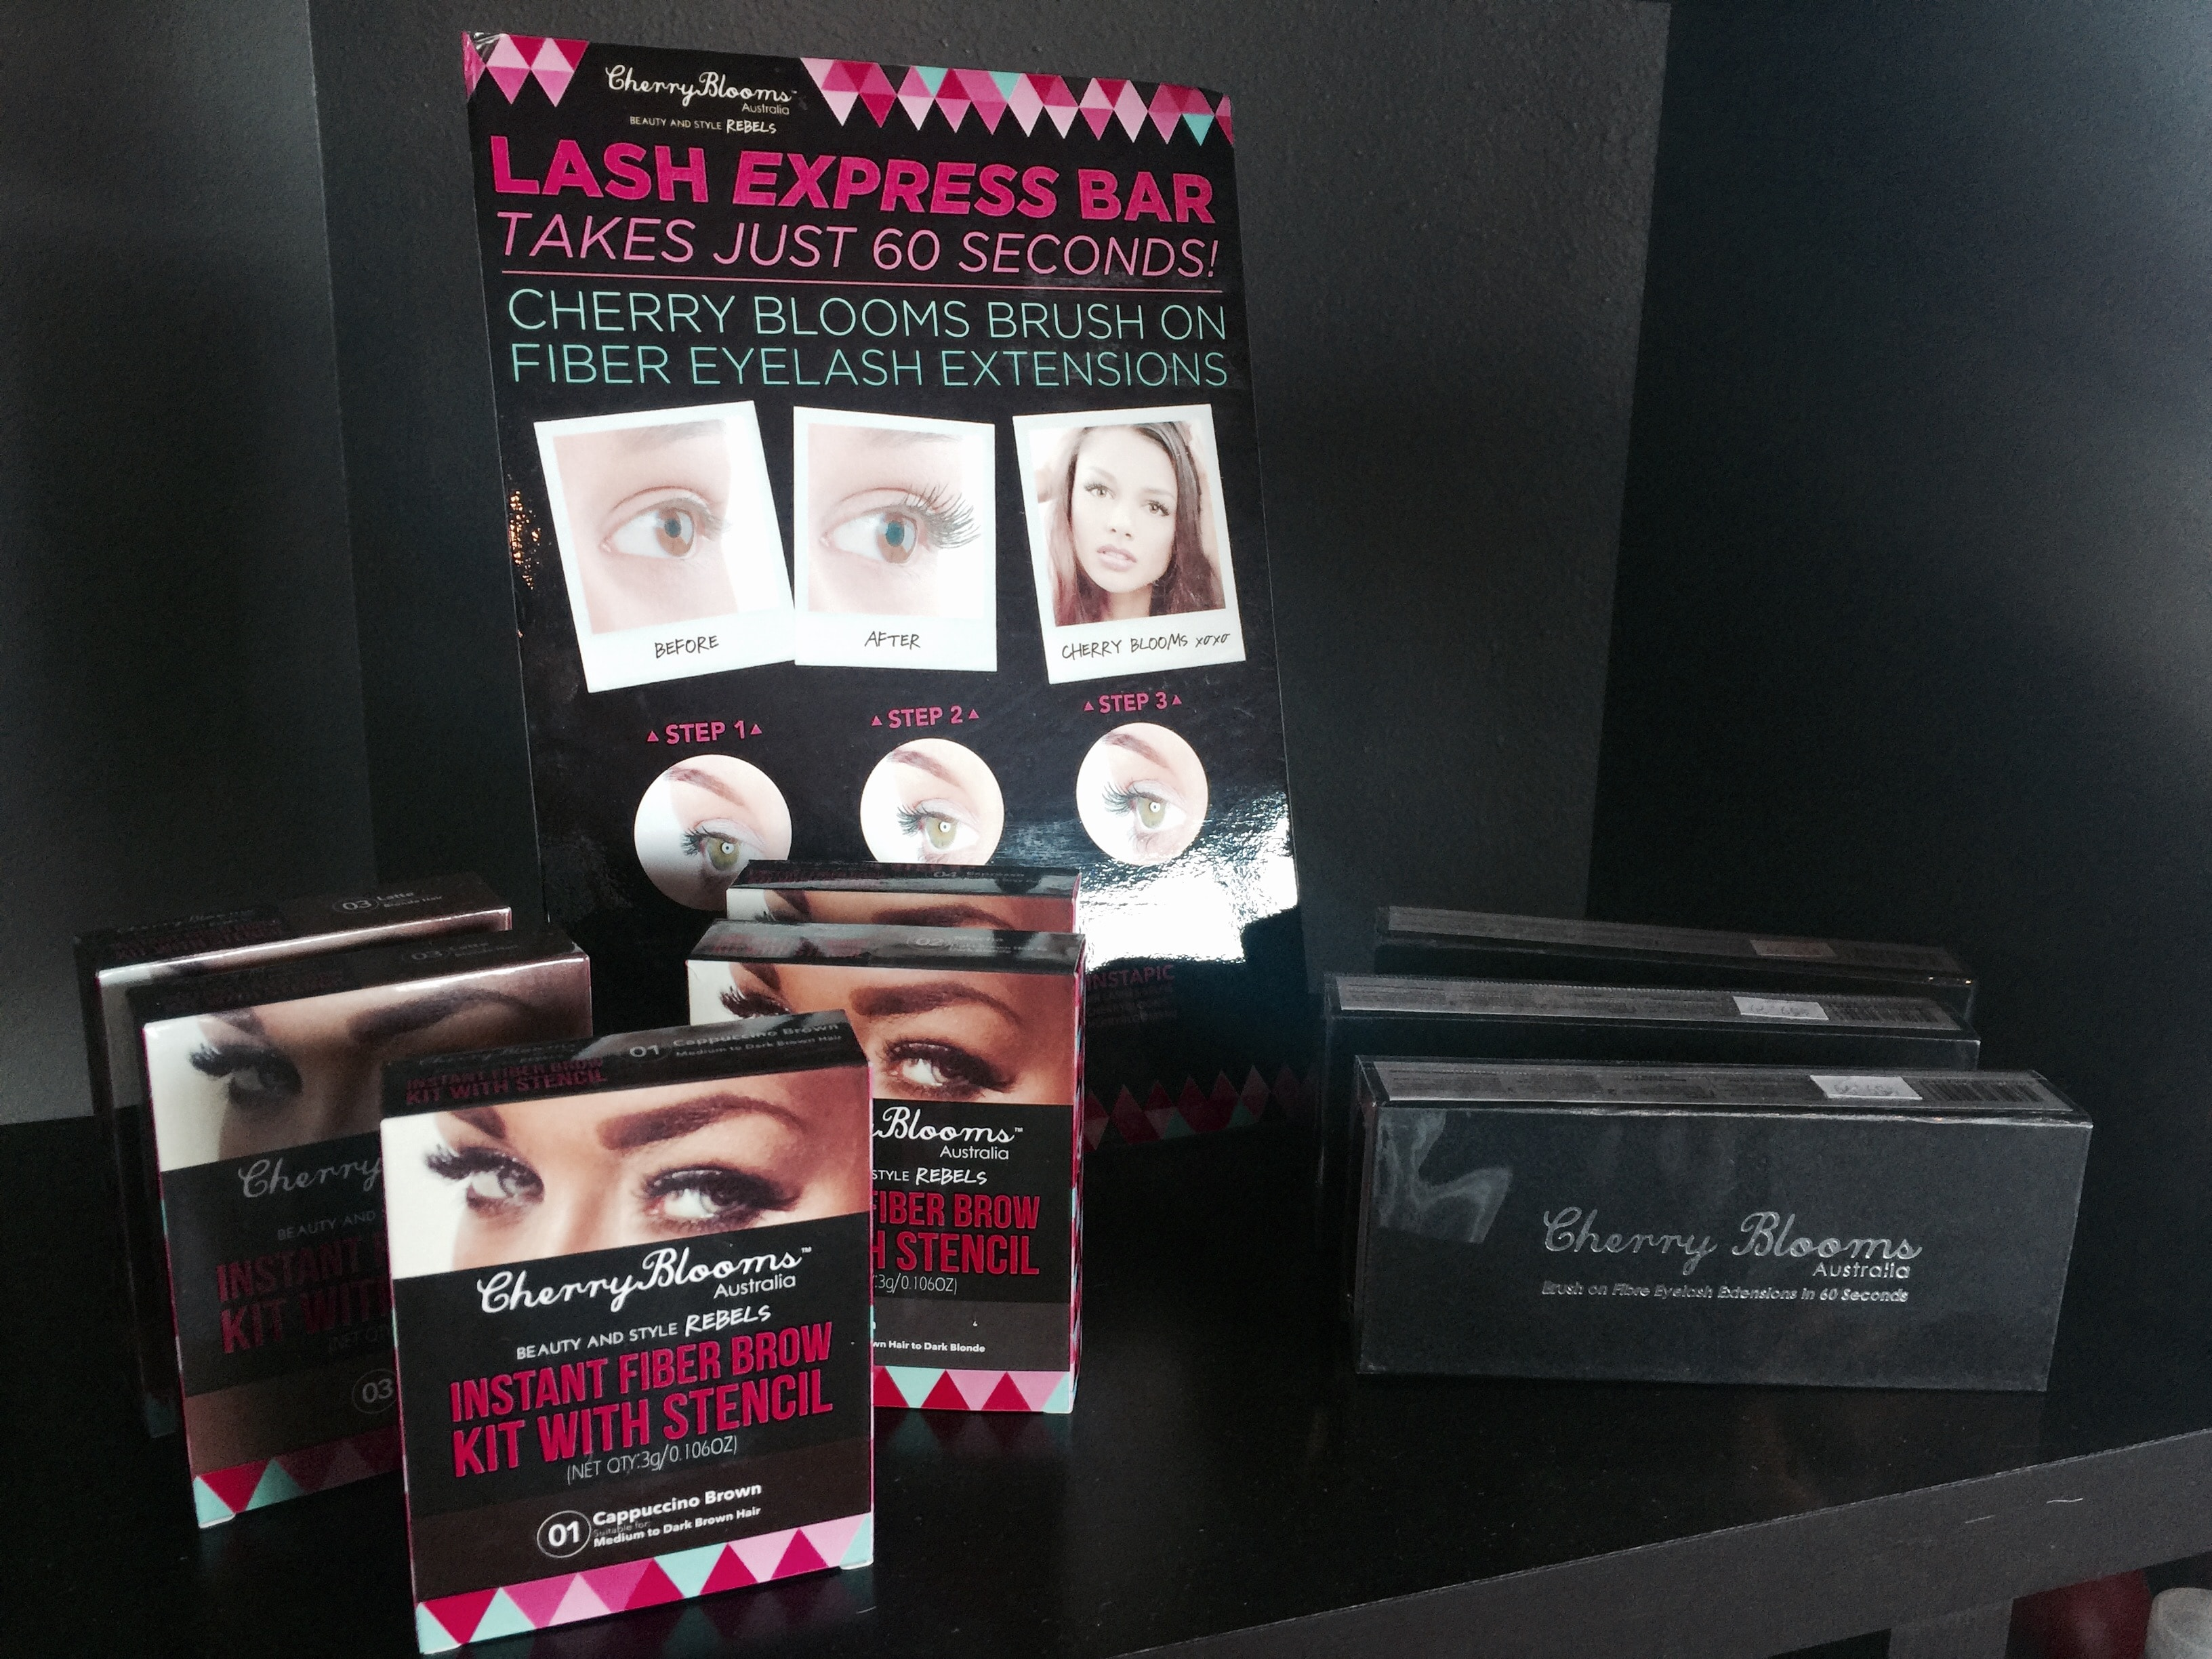 Cherry Blooms Fiber Mascara & Eyelash Fibers